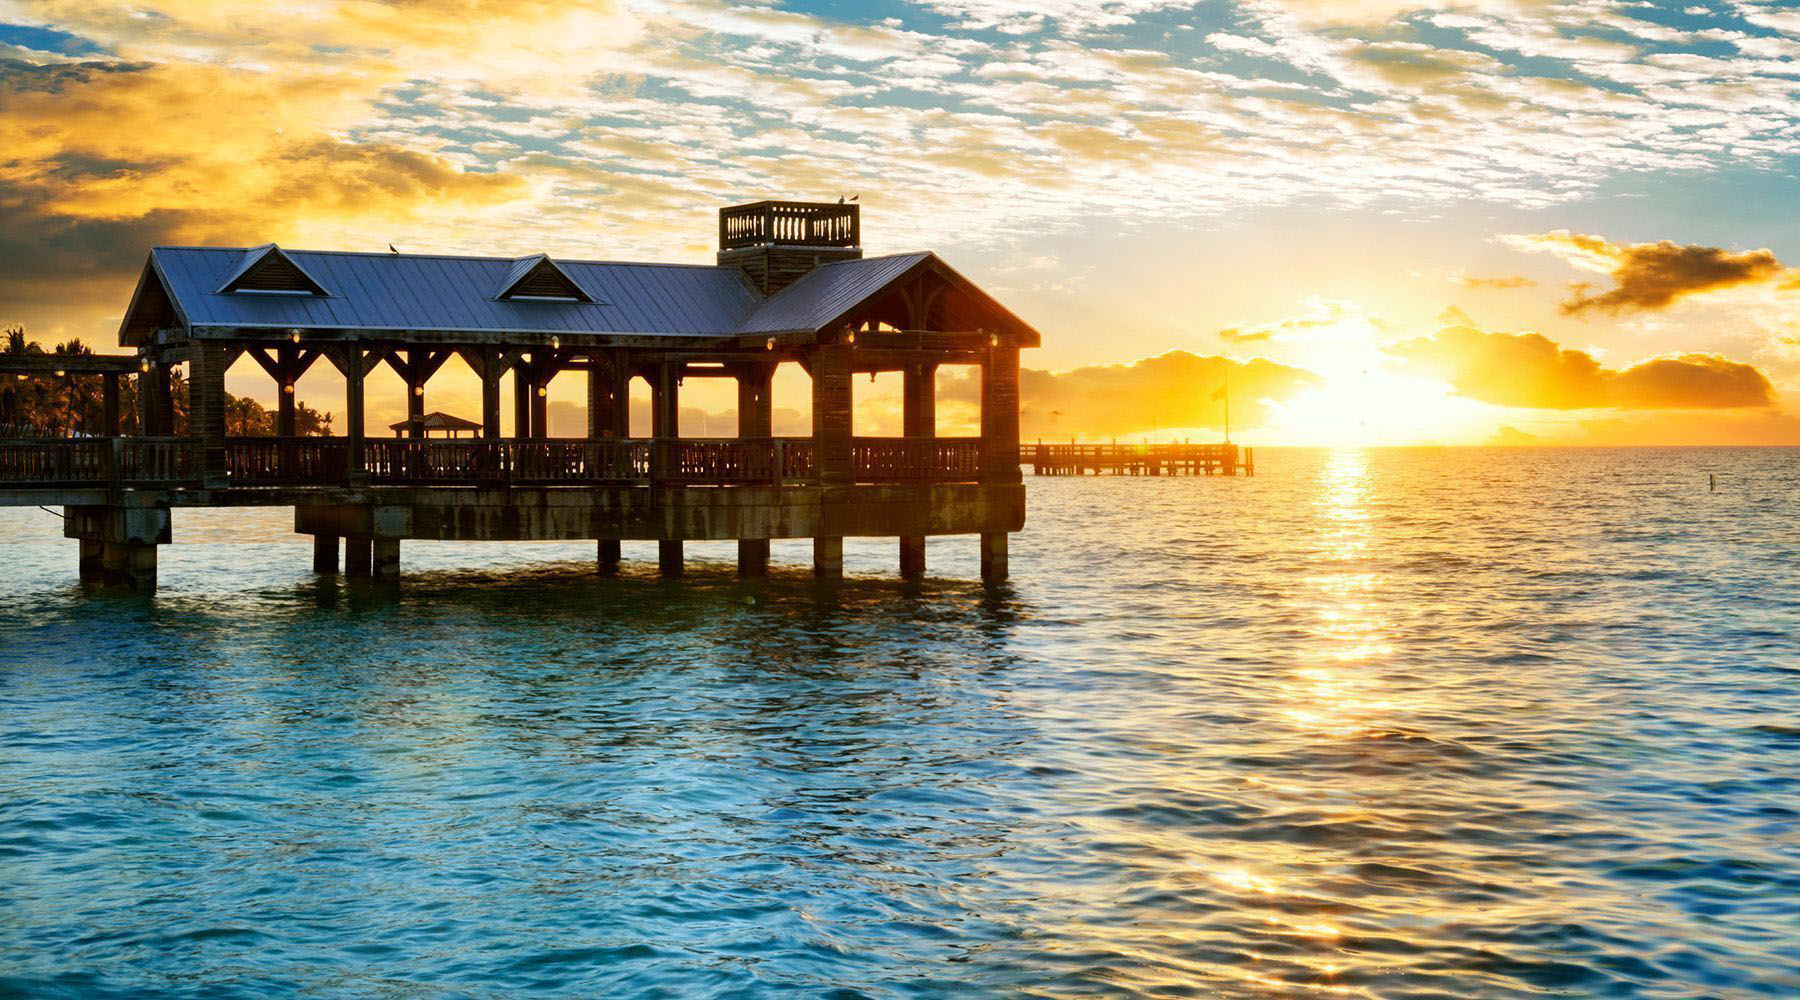 silhouette photo of cottage in key west florida on body of water